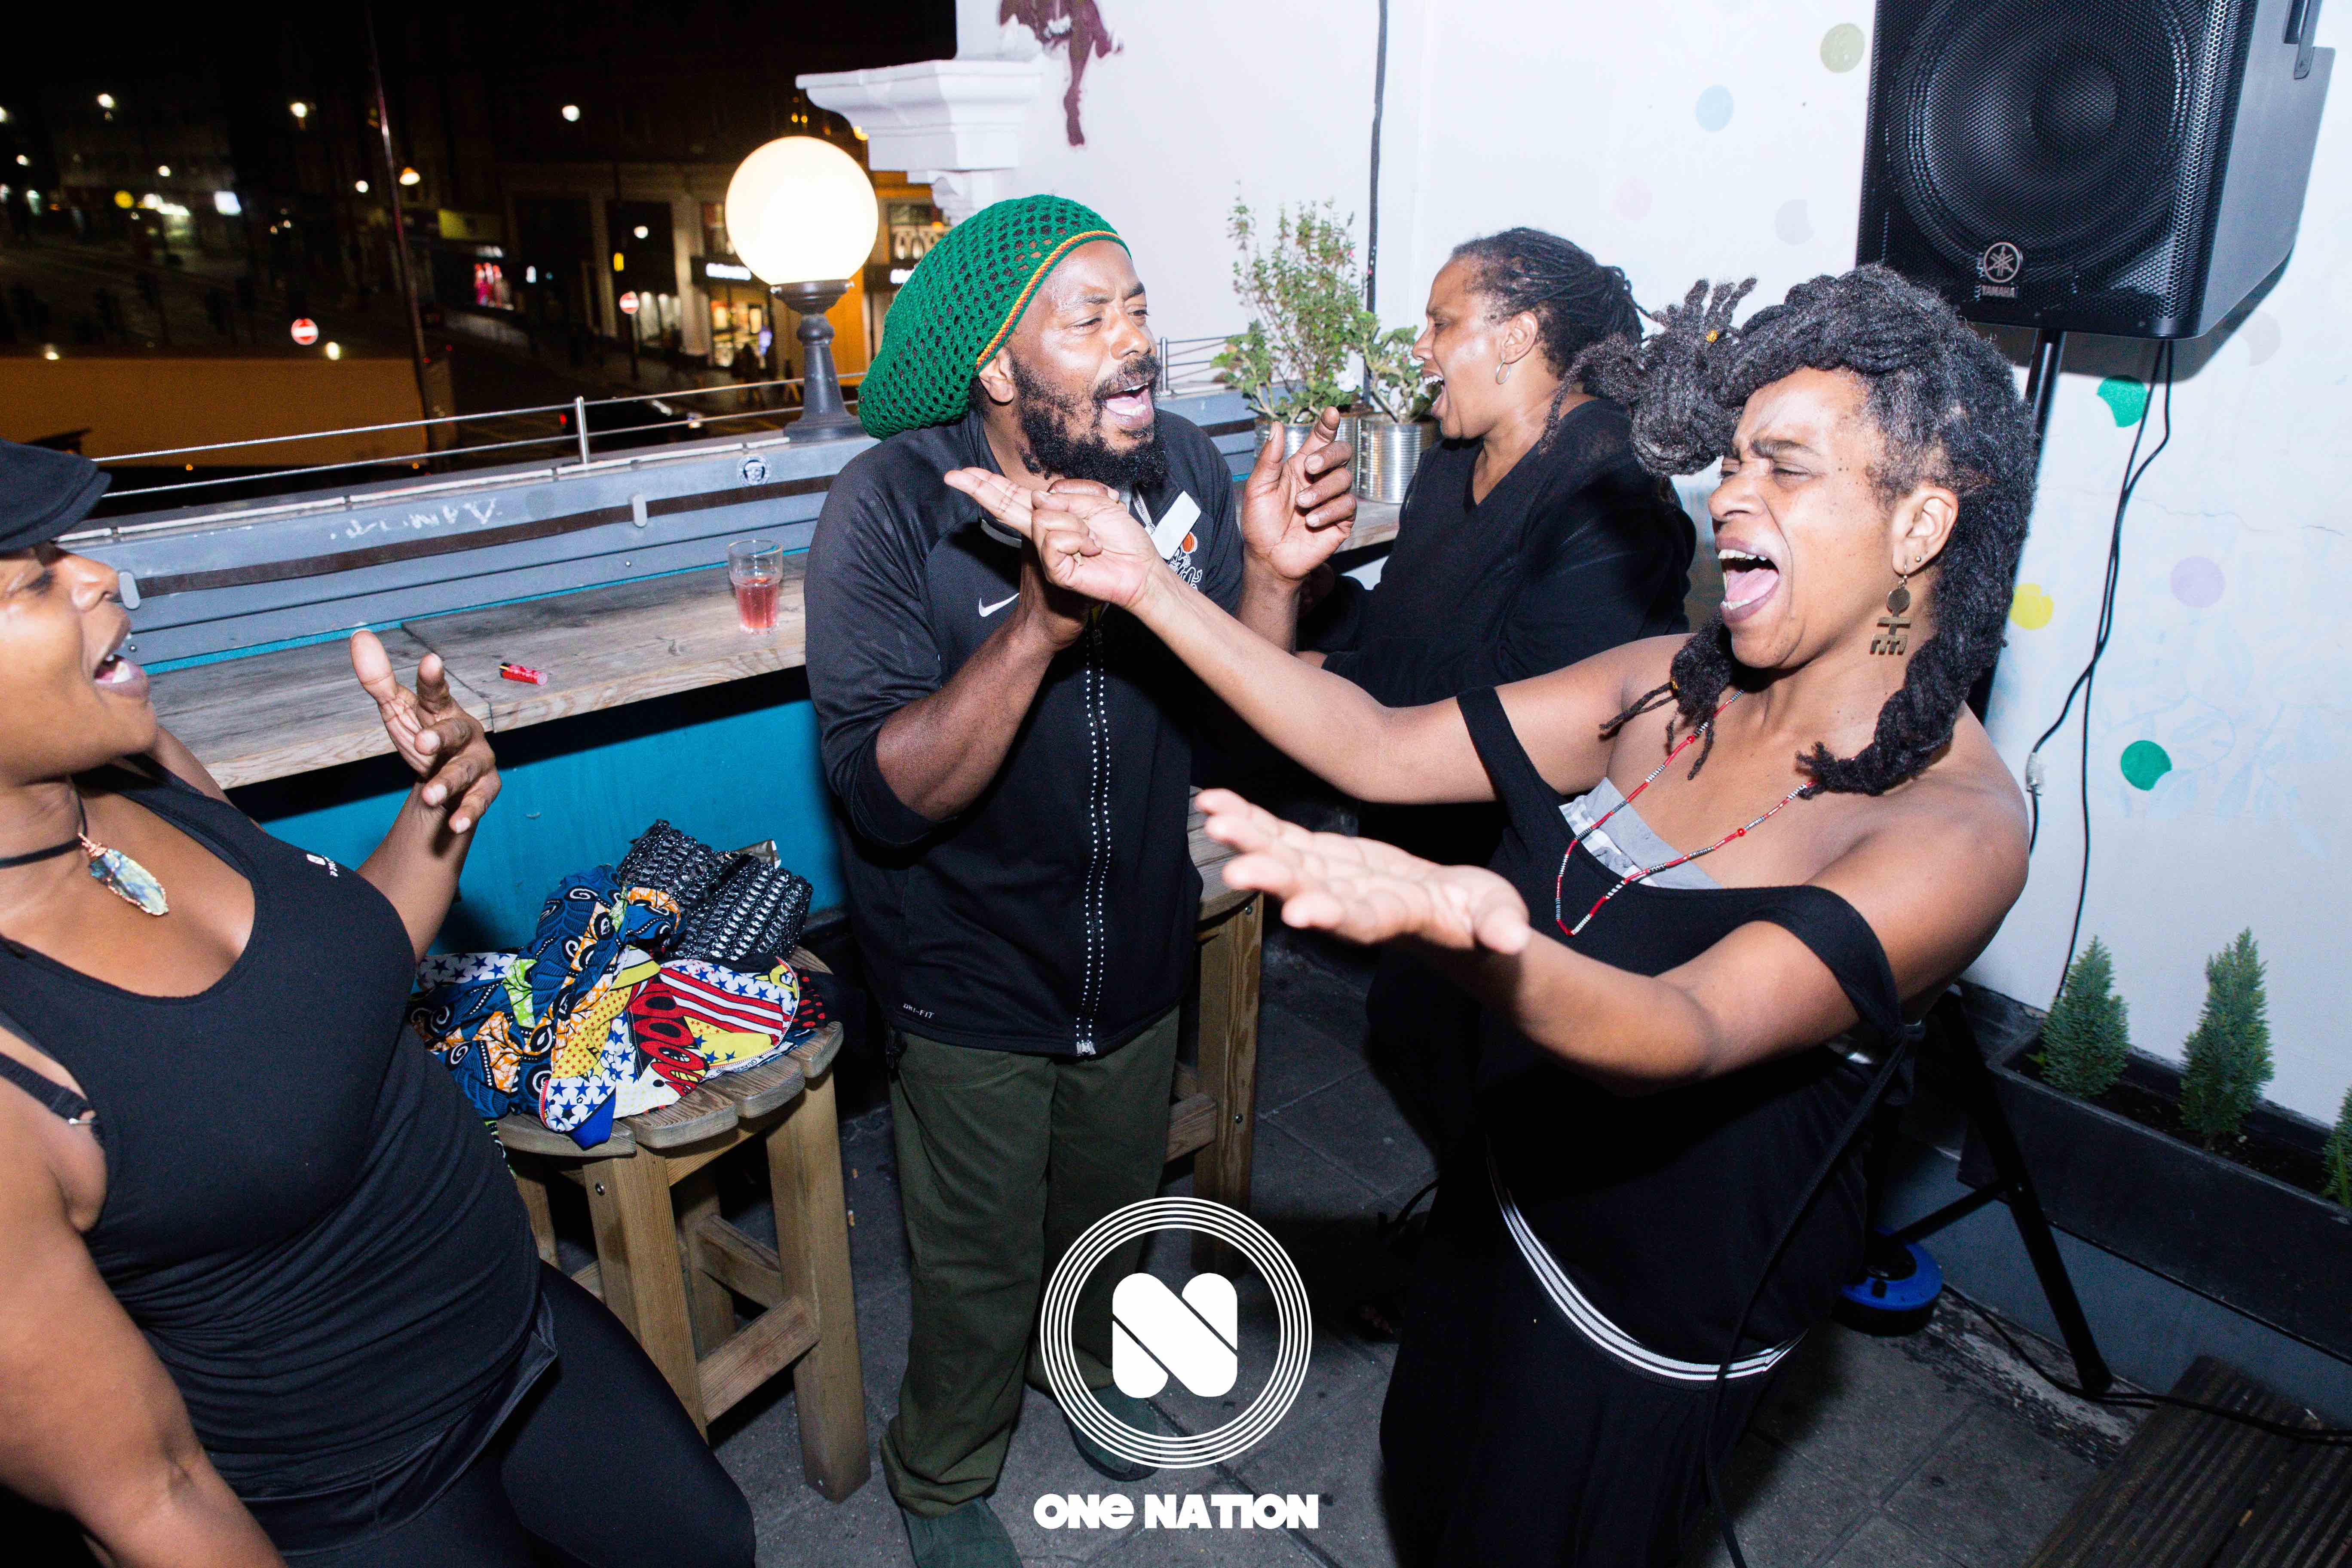 We like to take the party onto the outdoor terrace overlooking the heart of Brixton. #OneNationUAG